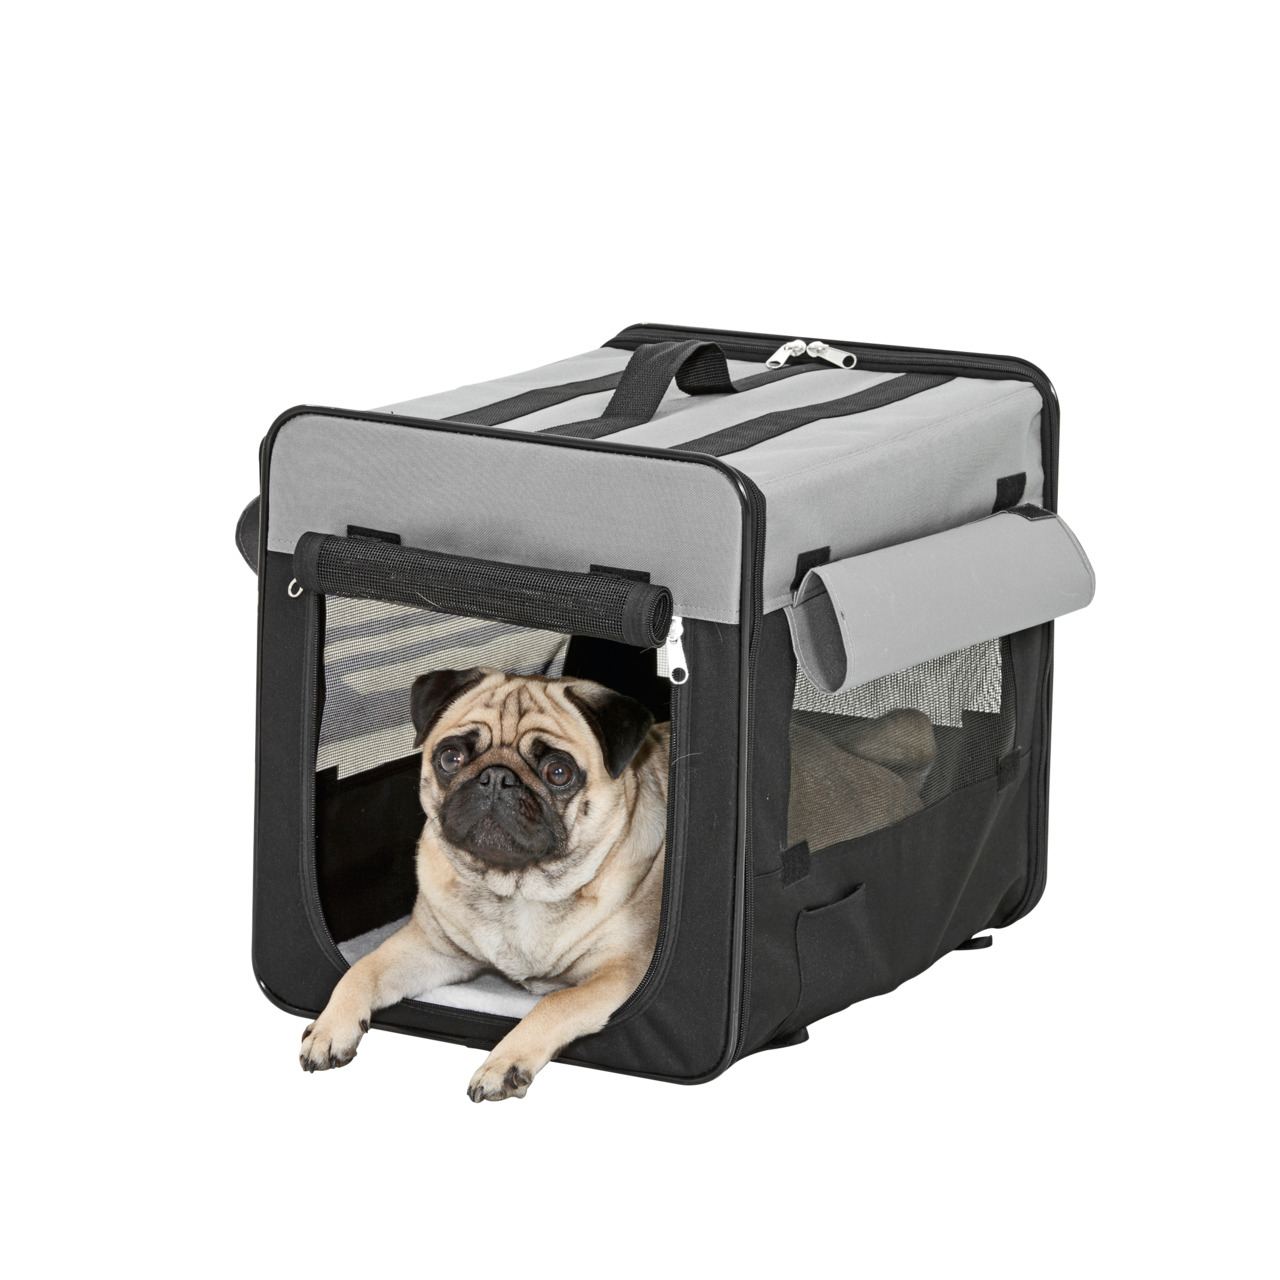 Karlie Smart Top Plus faltbare Hundebox, Bild 6